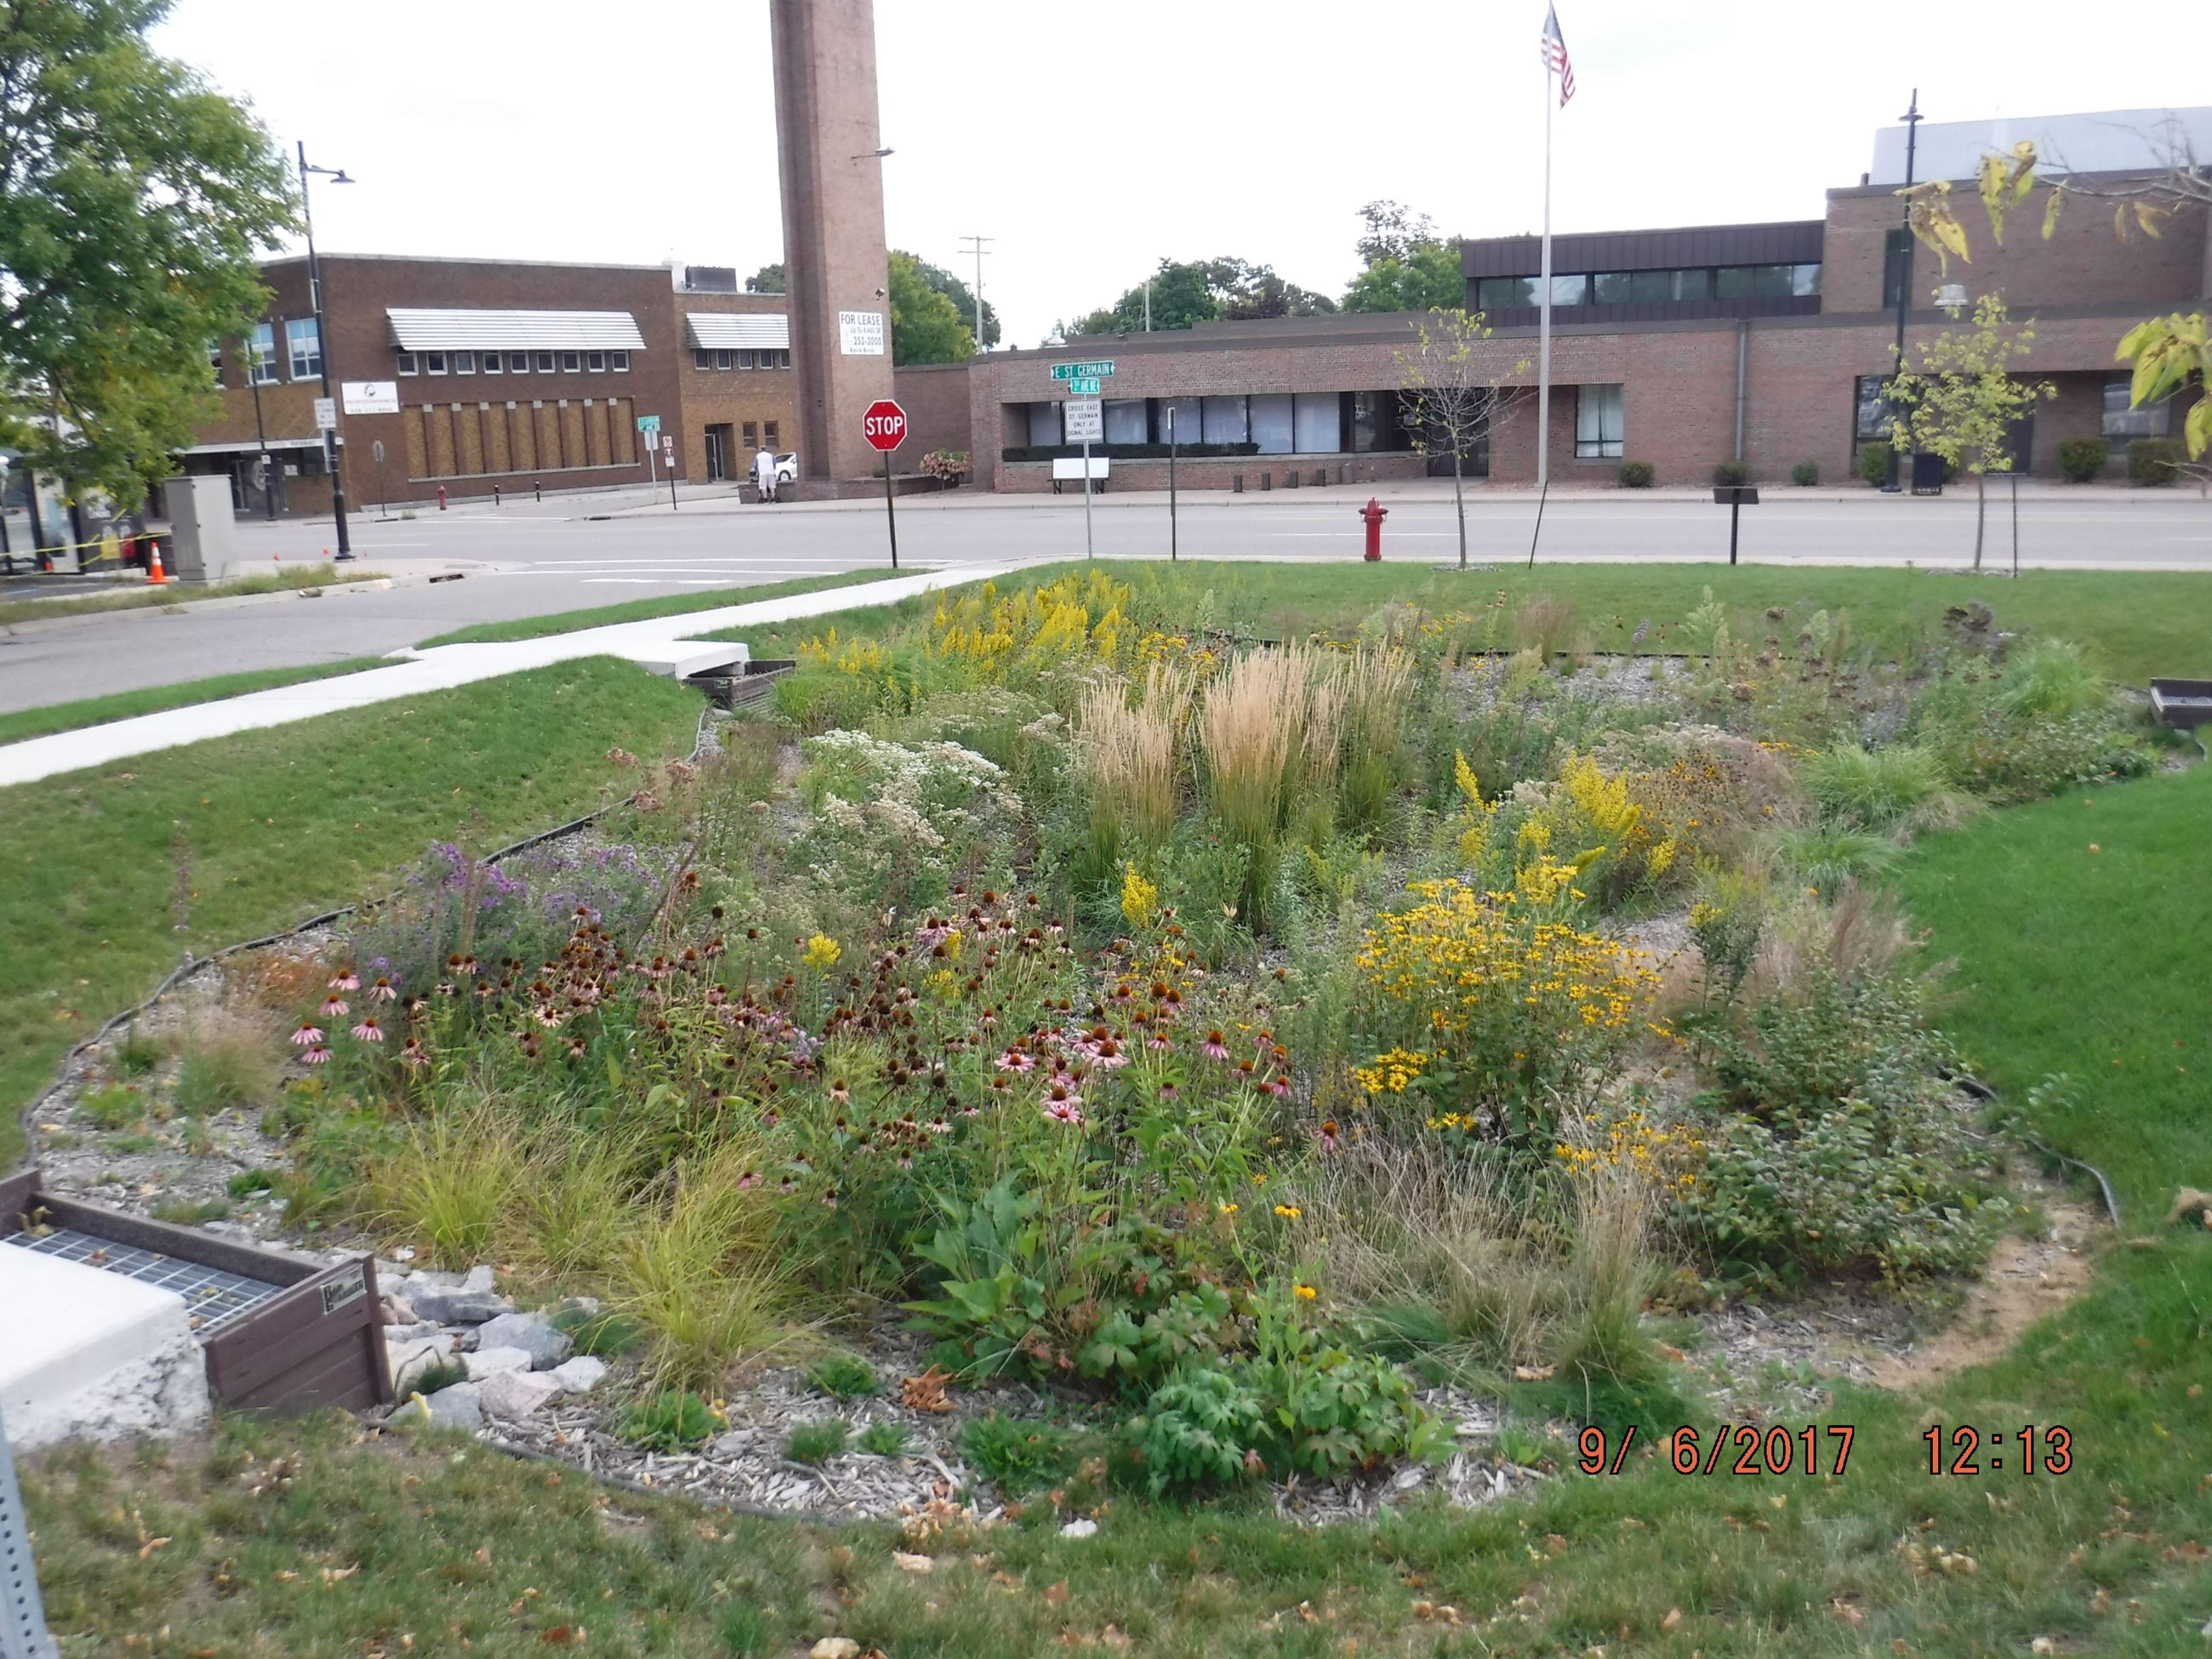 Rain Rain garden filled with wildflowers